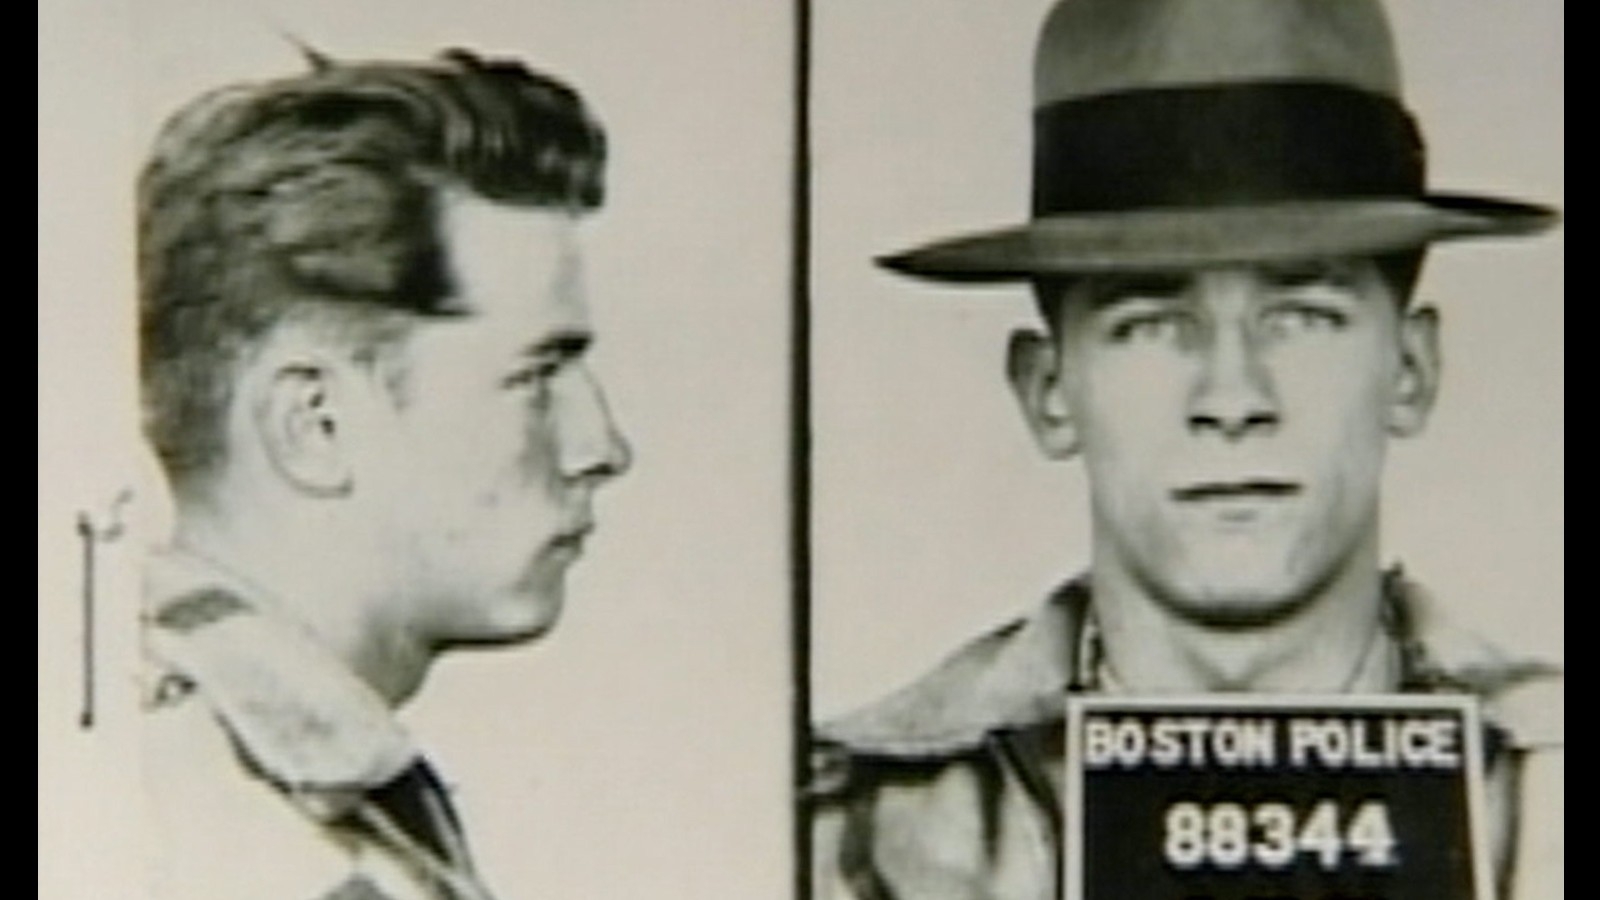 6 facts about Boston gang leader James